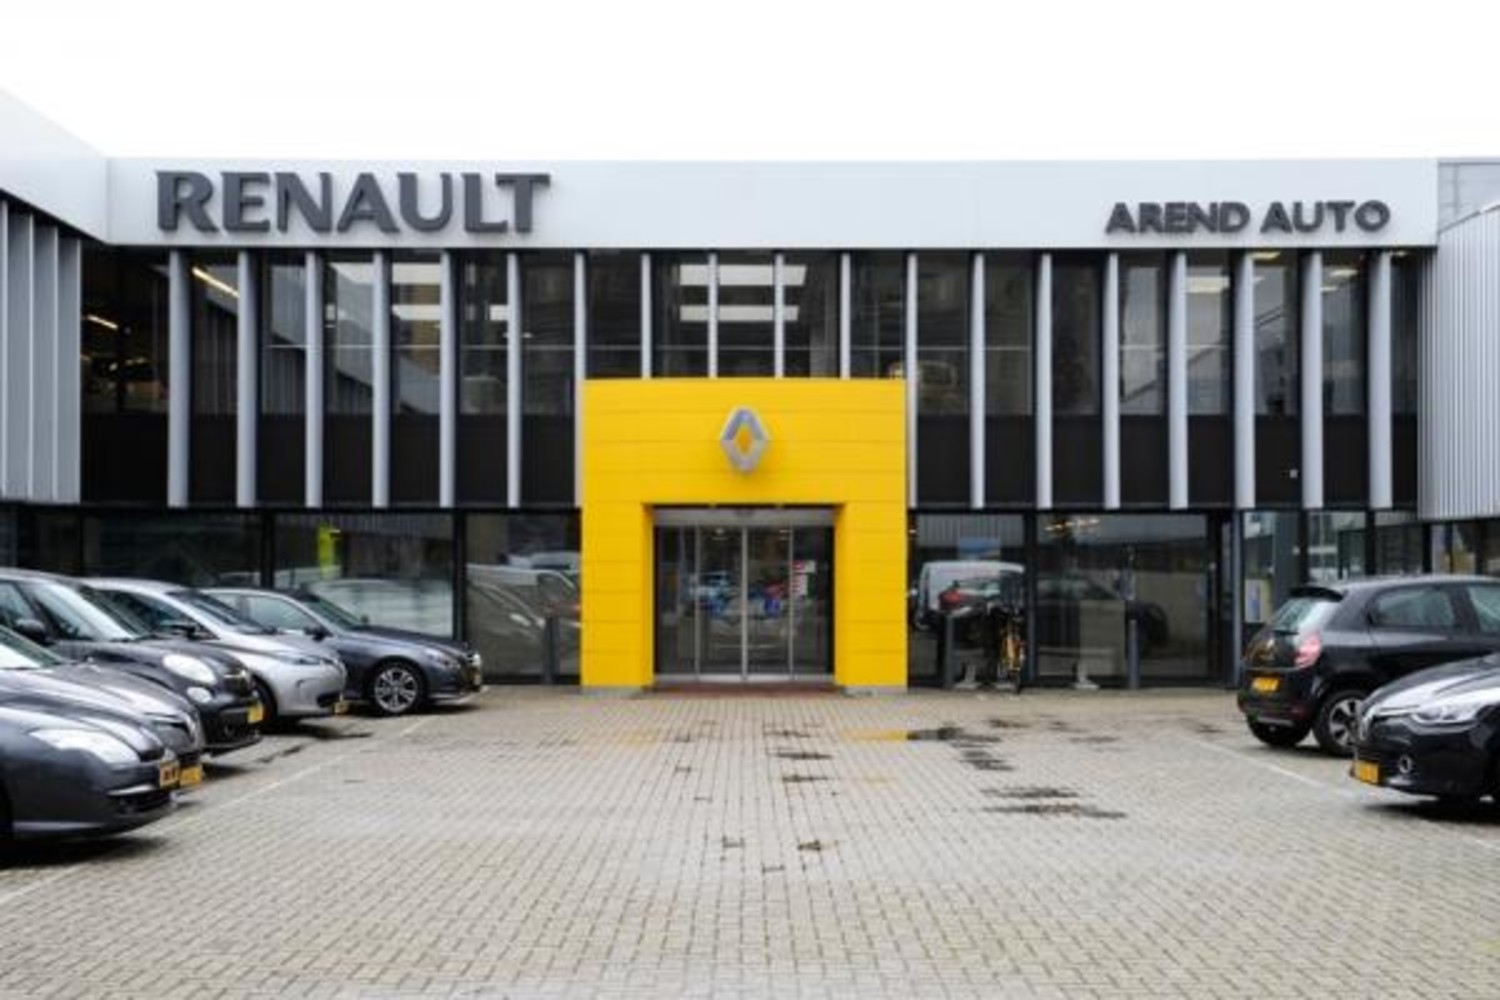 Arend auto Renault - Foto 14